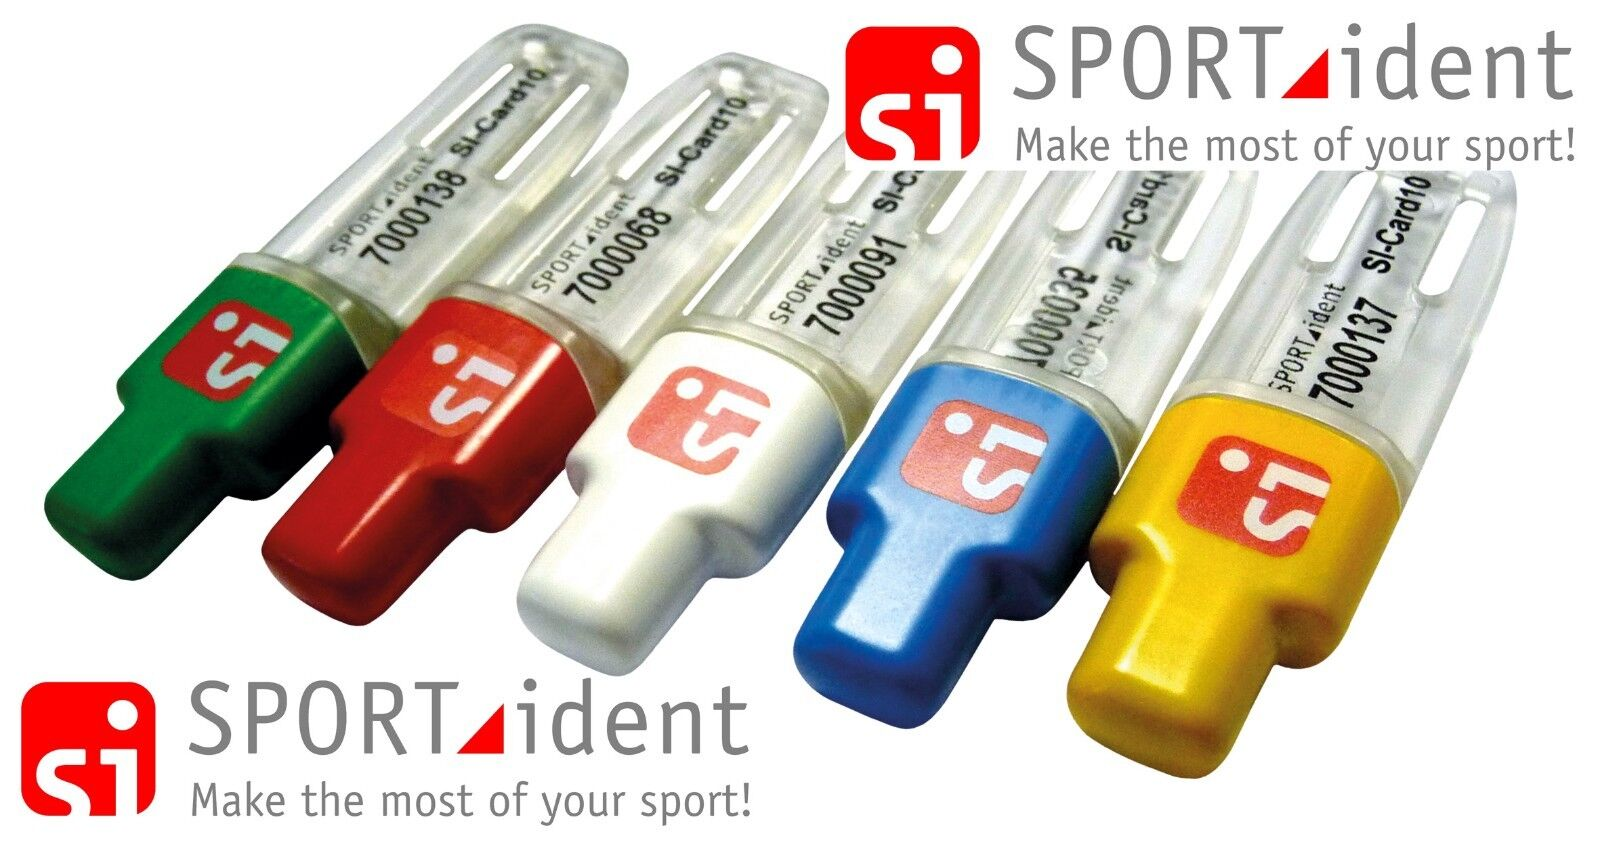 SportIdent SI - Card 10 for orienteering